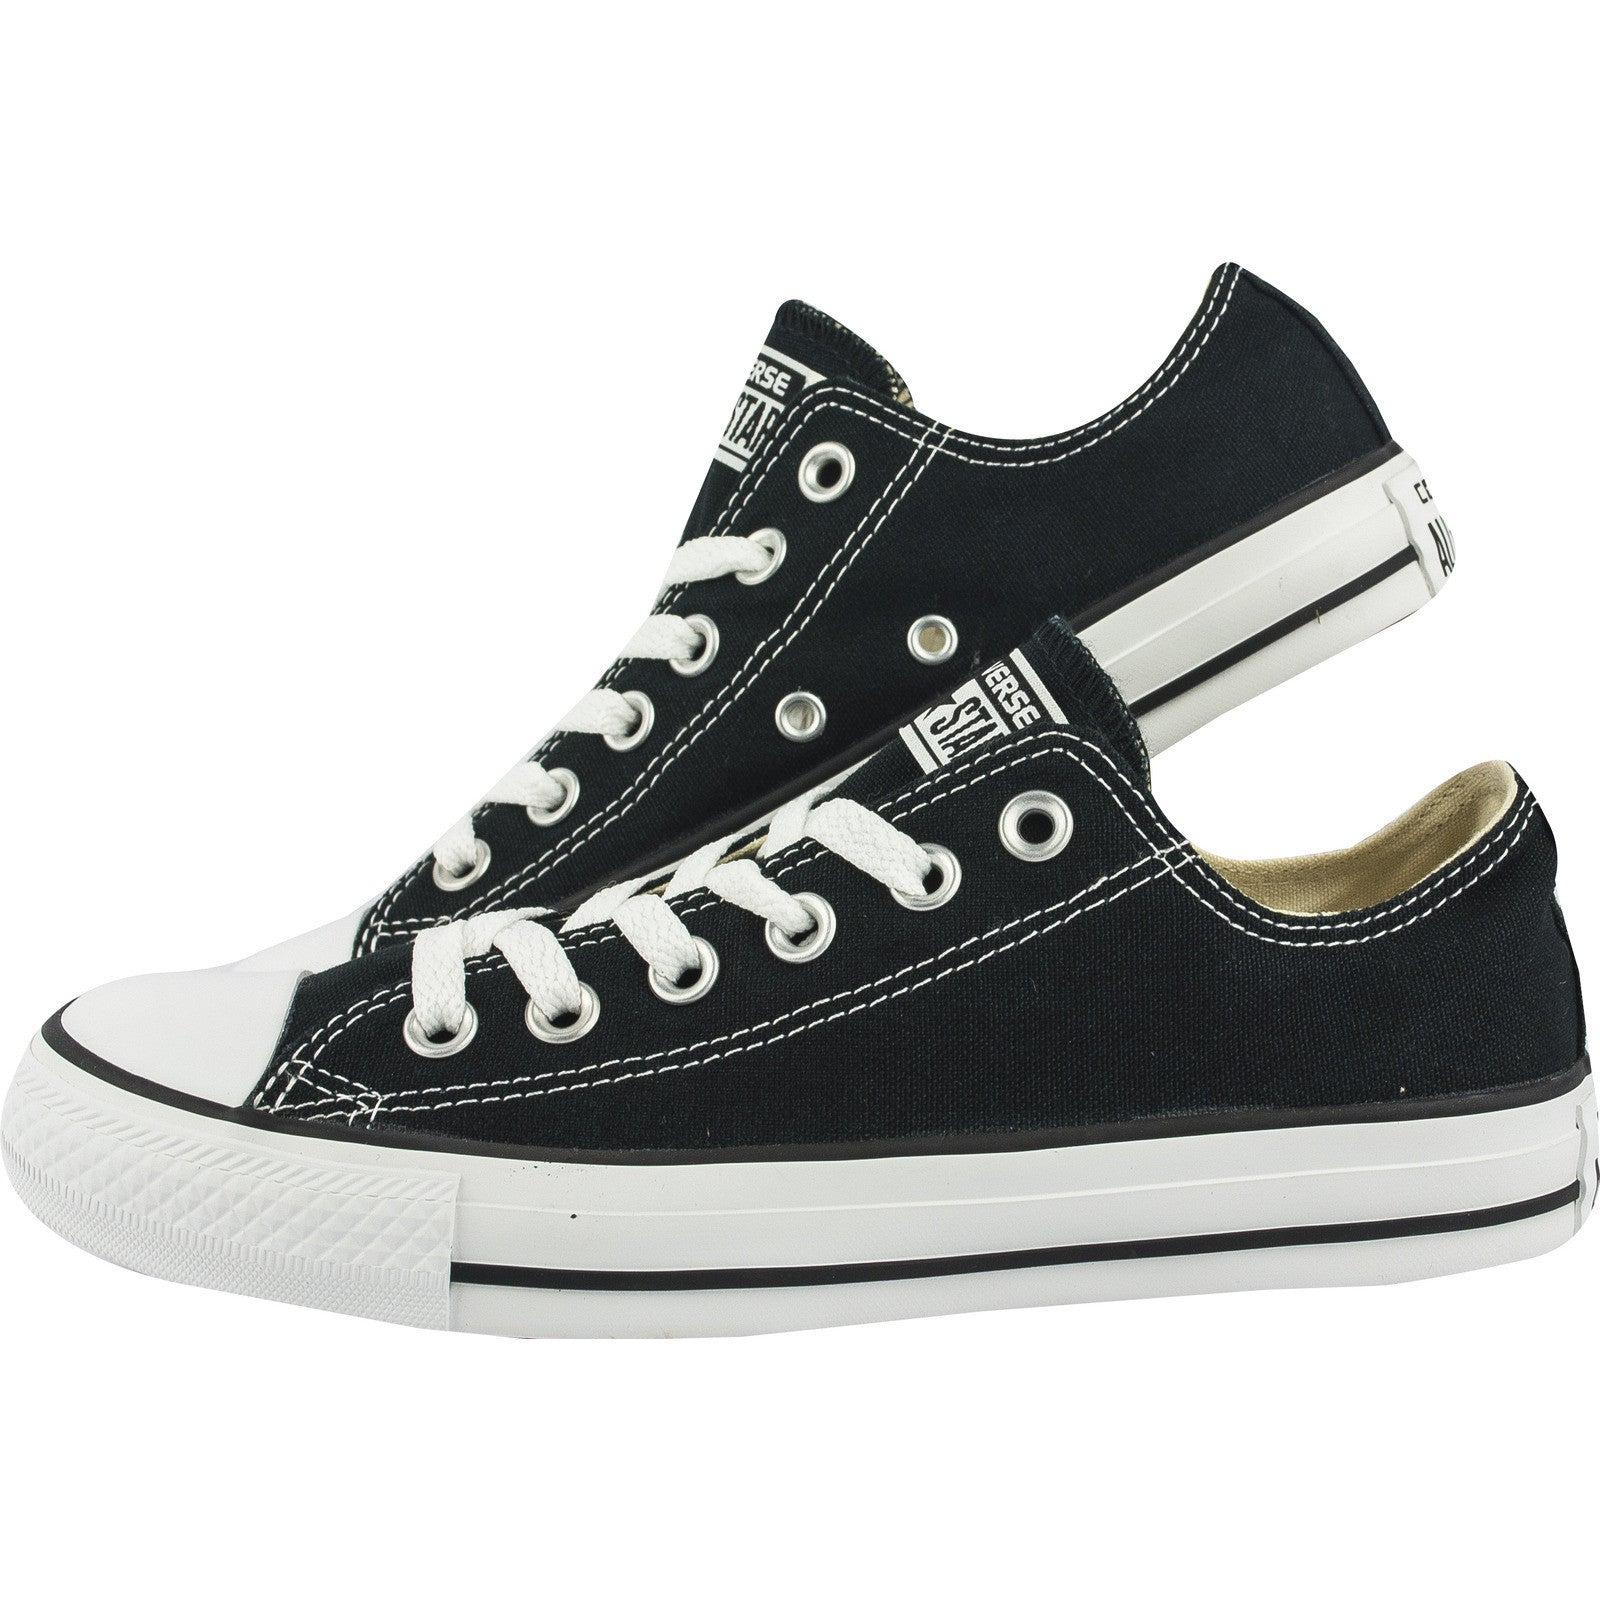 cd242f38ce4 ... Converse Classic Chuck Taylor Low Trainer Sneaker All Star OX NEW sizes  Shoes    ...